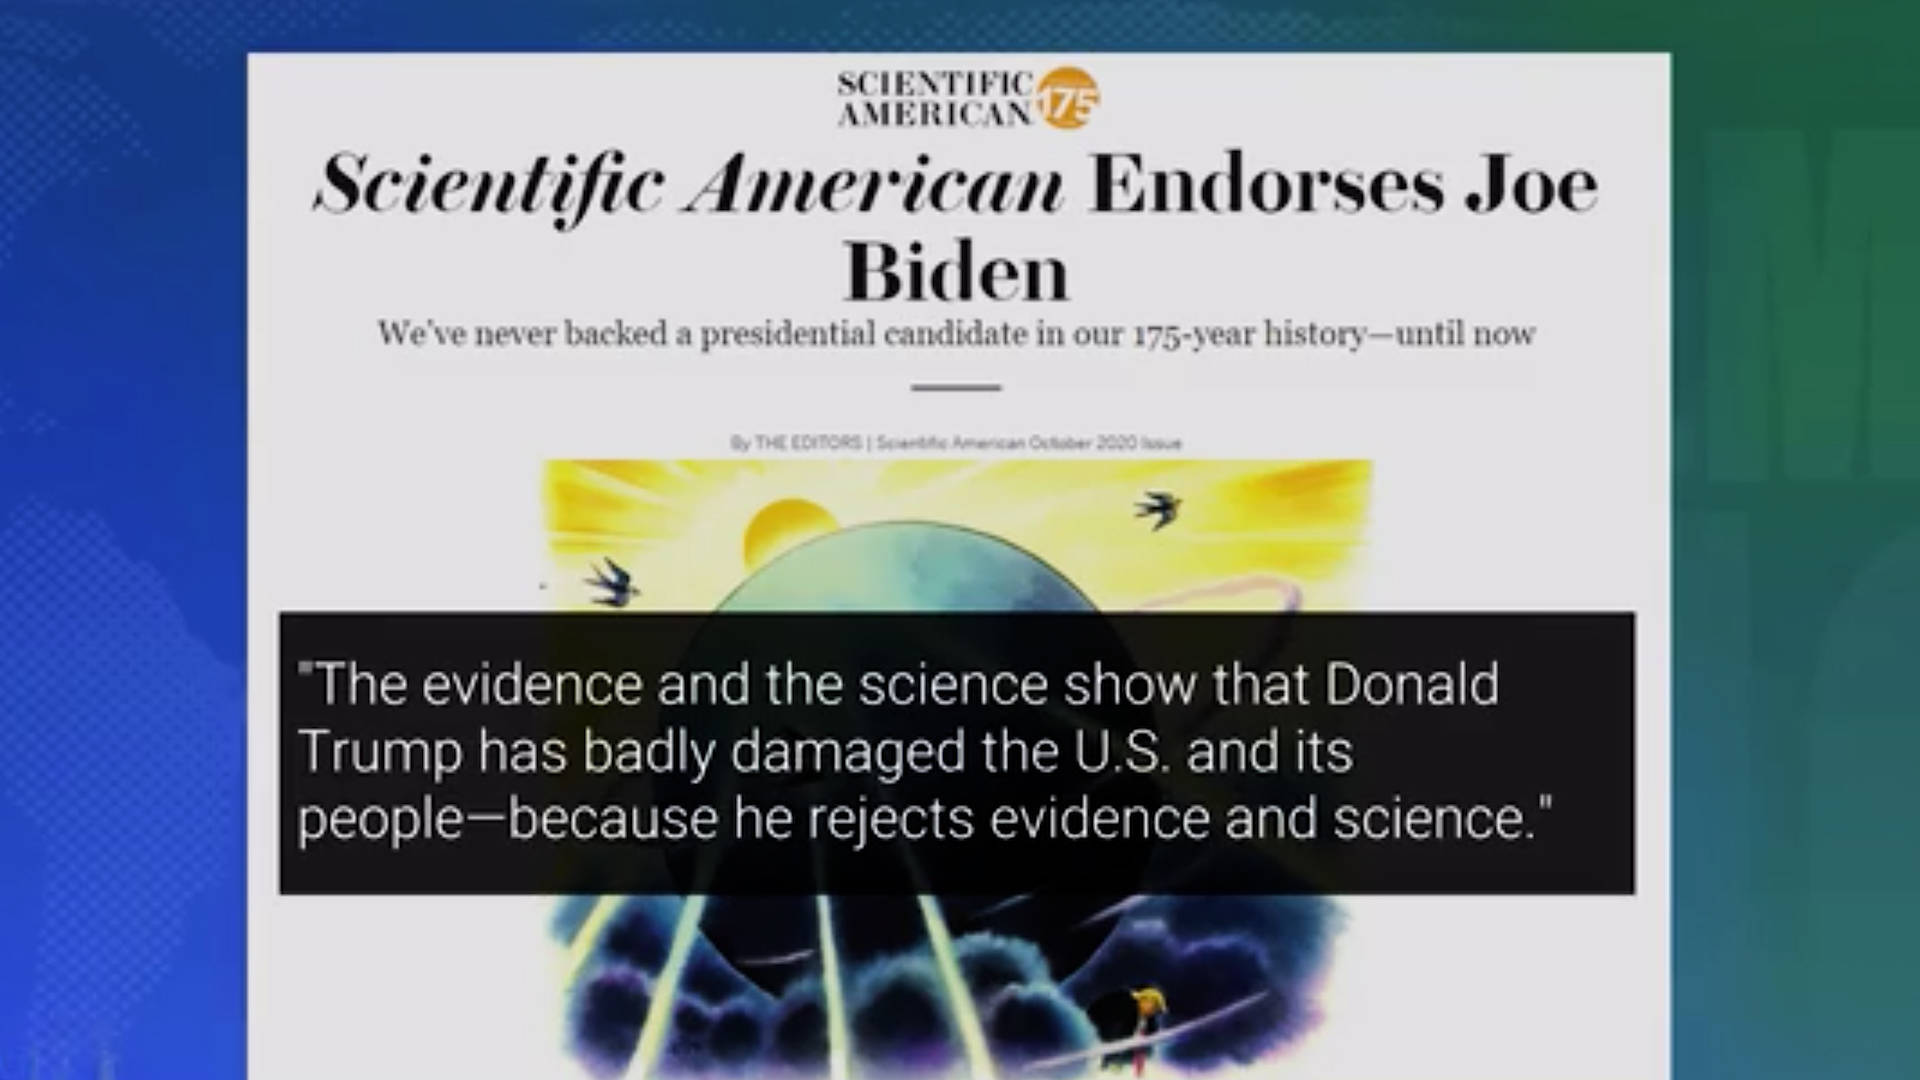 h15 scientific american endorses joe biden saying trump rejects science.'